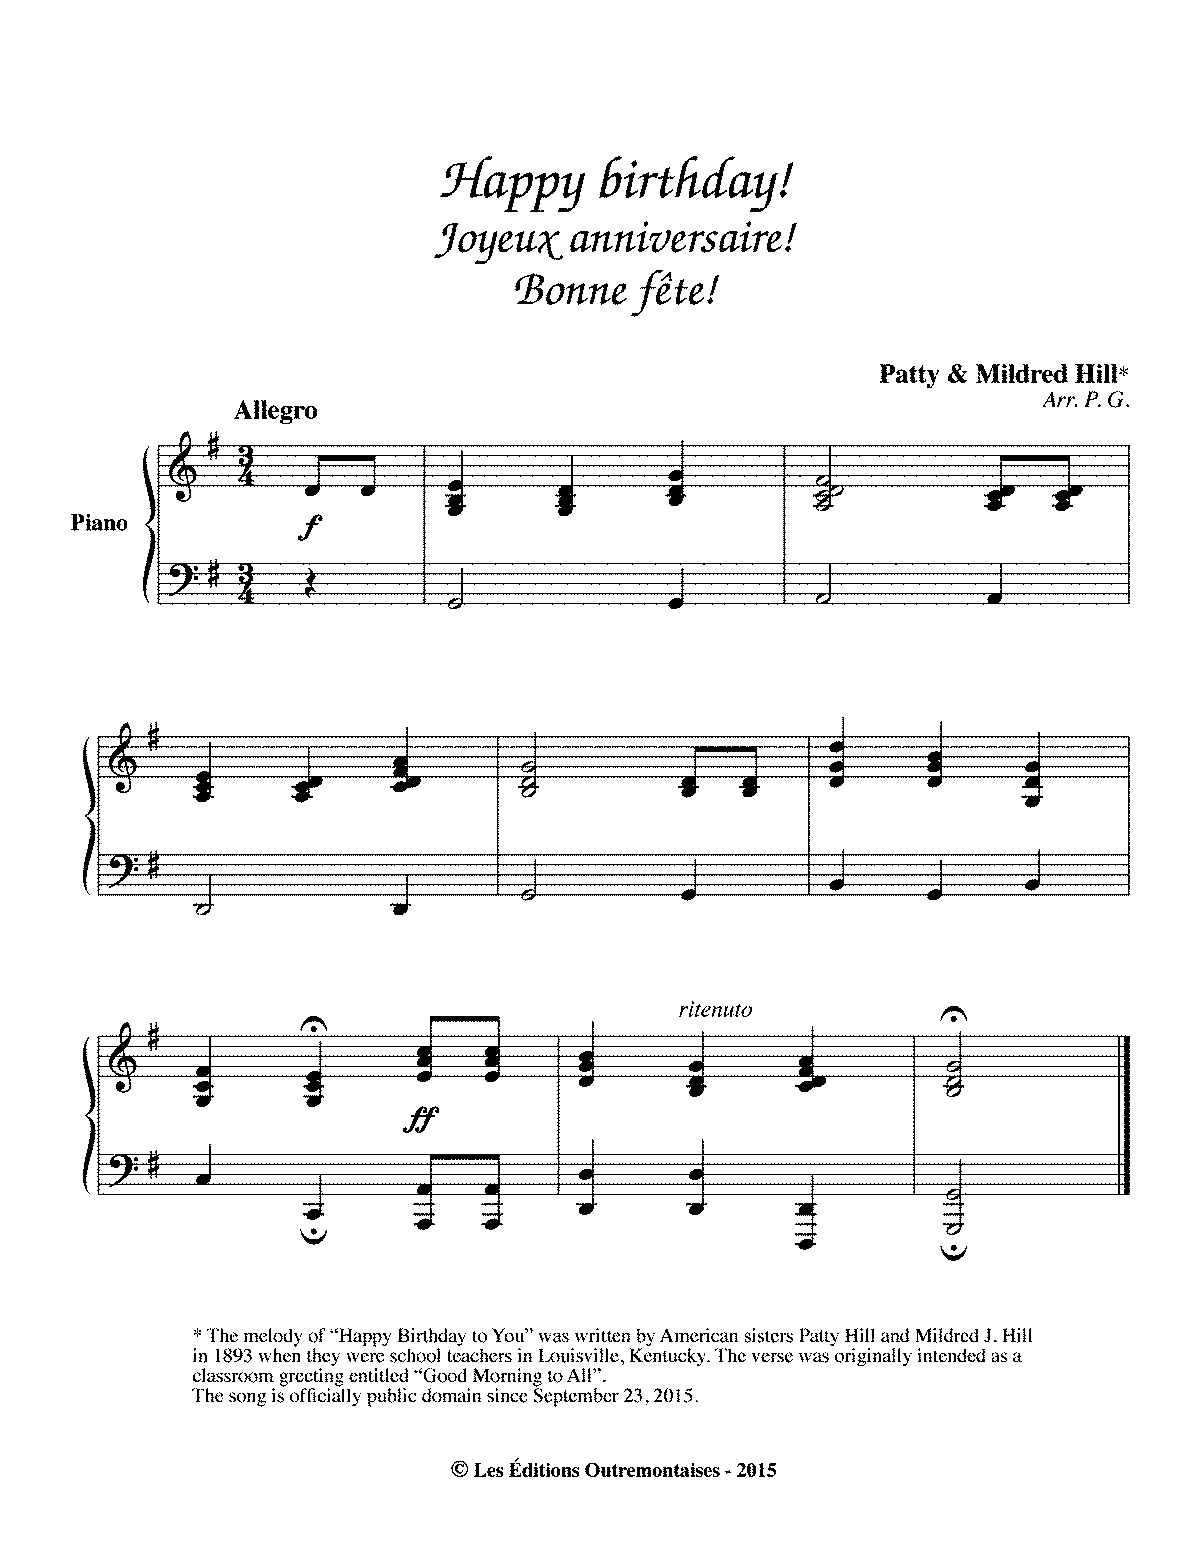 how to play piano song happy birthday